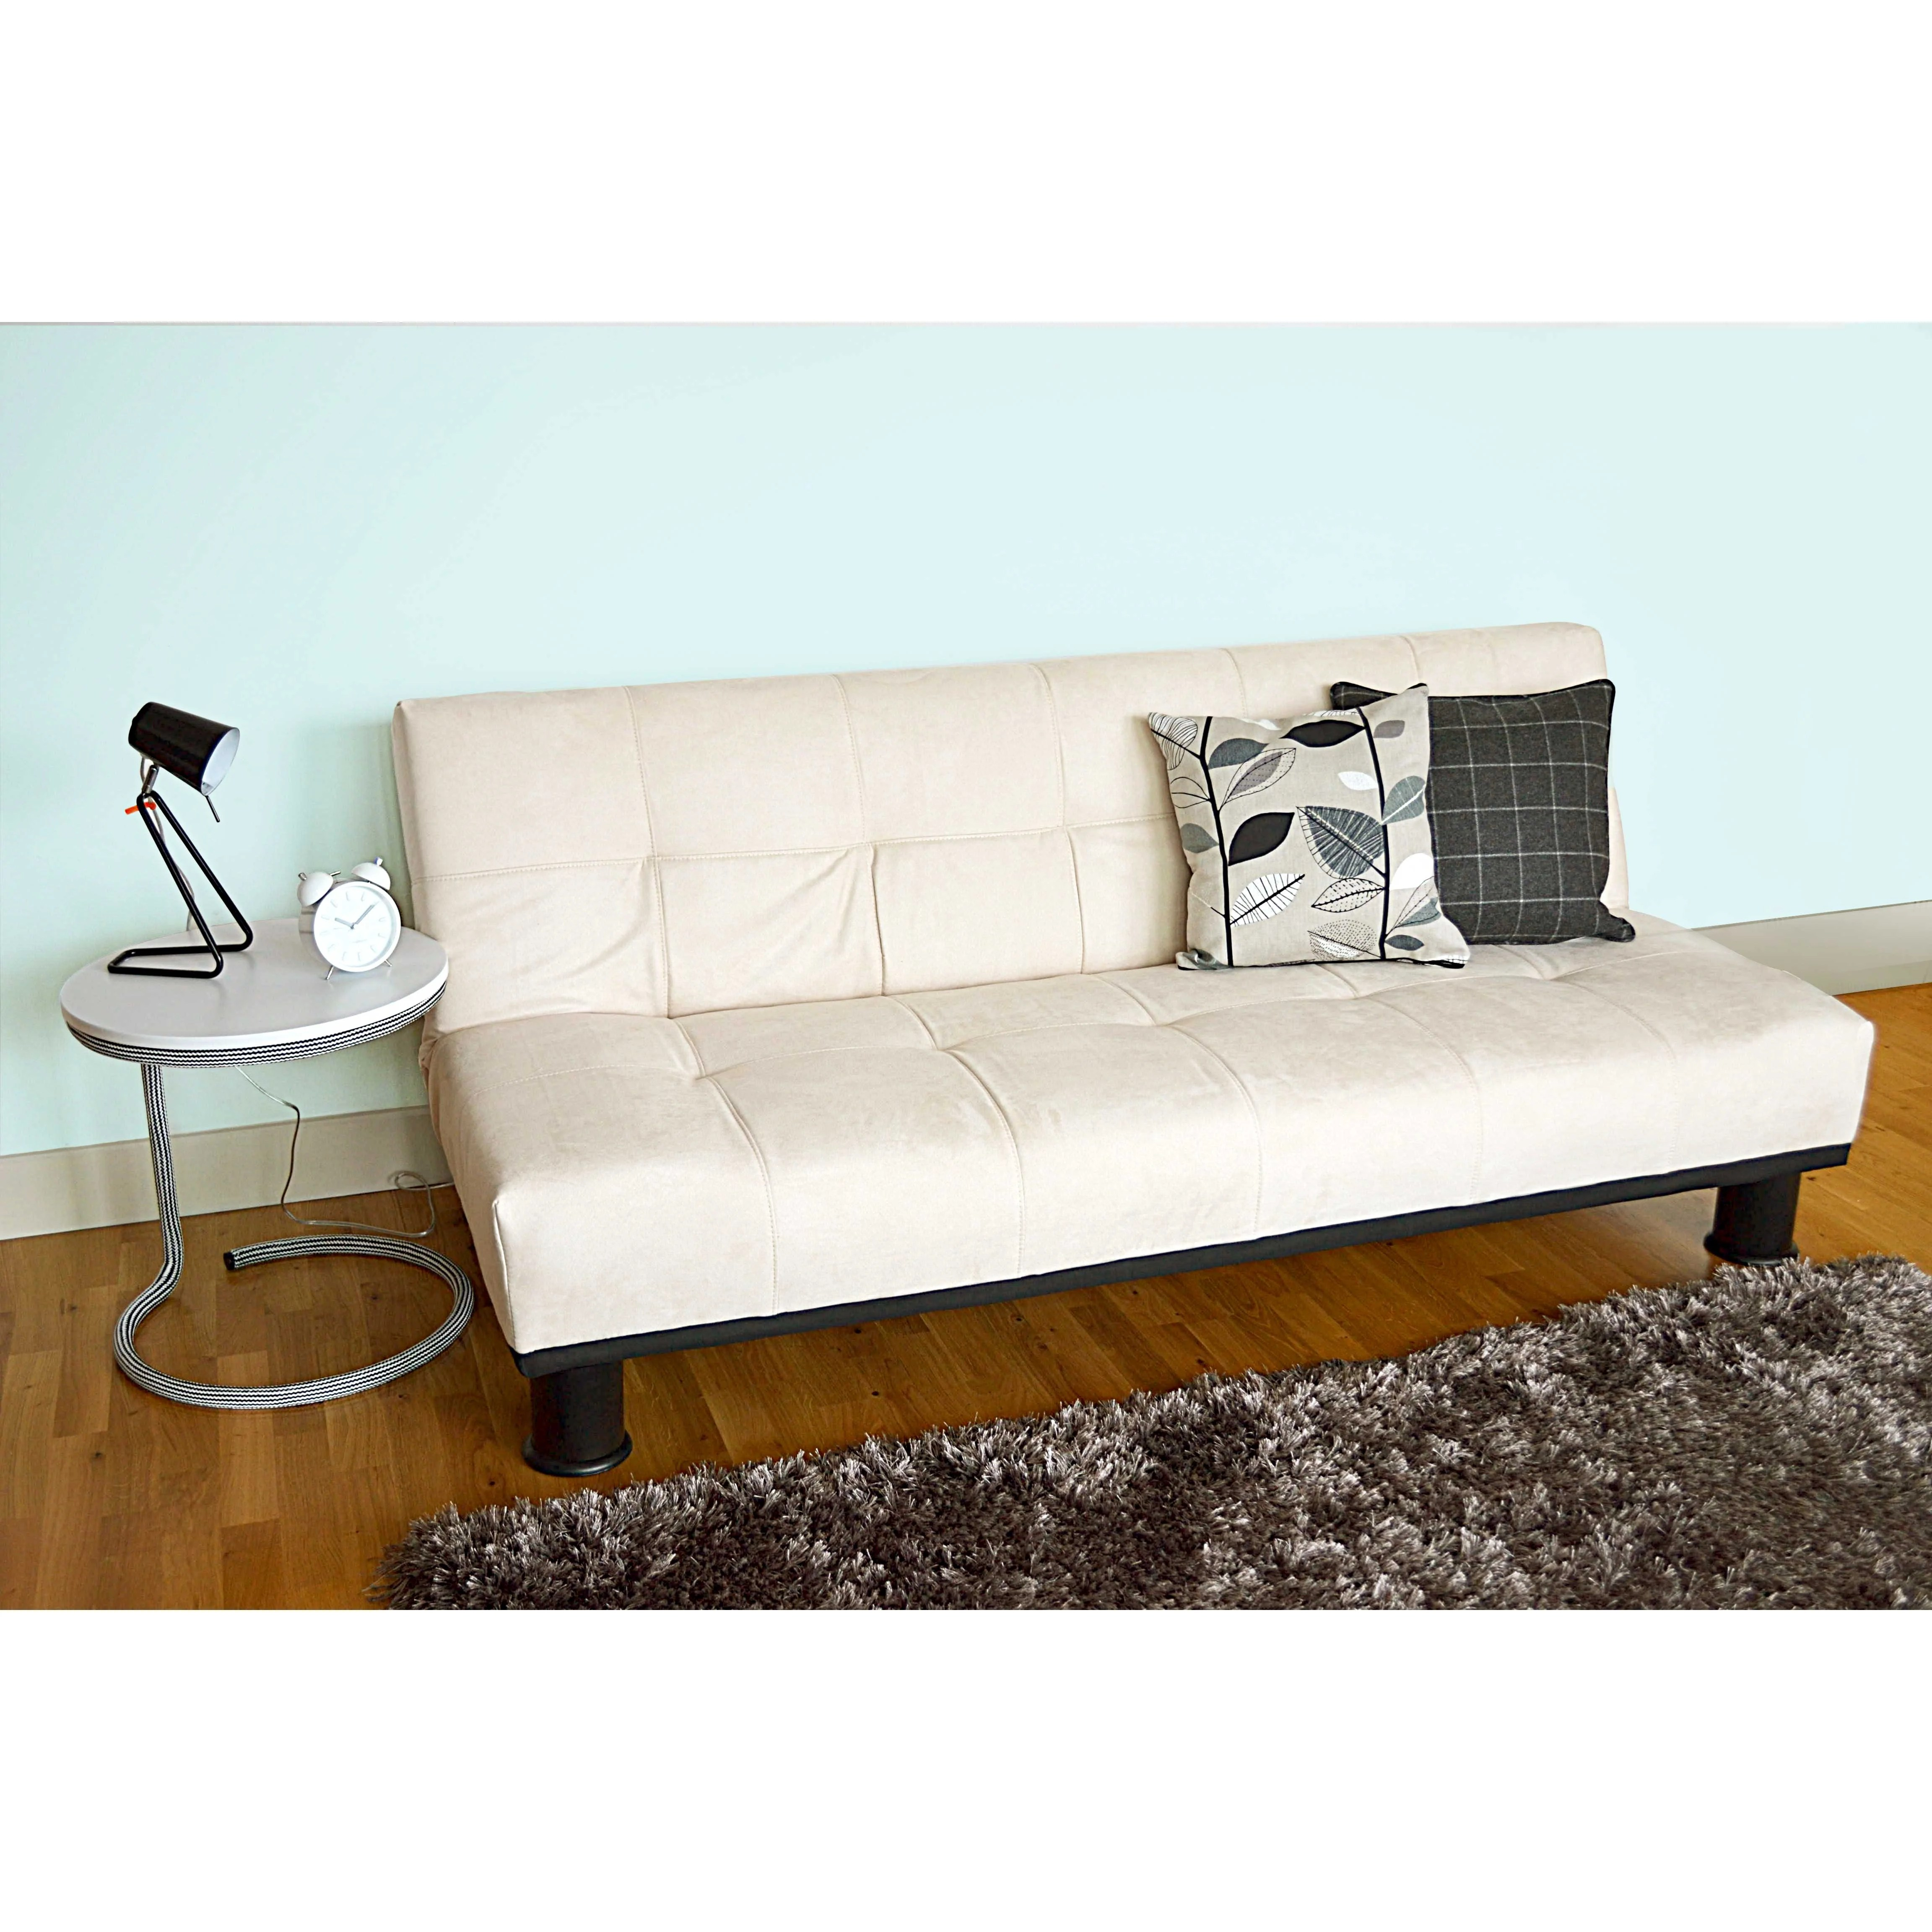 victoria clic clac sofa bed review leather sofas flexsteel leader lifestyle 3 seater and reviews